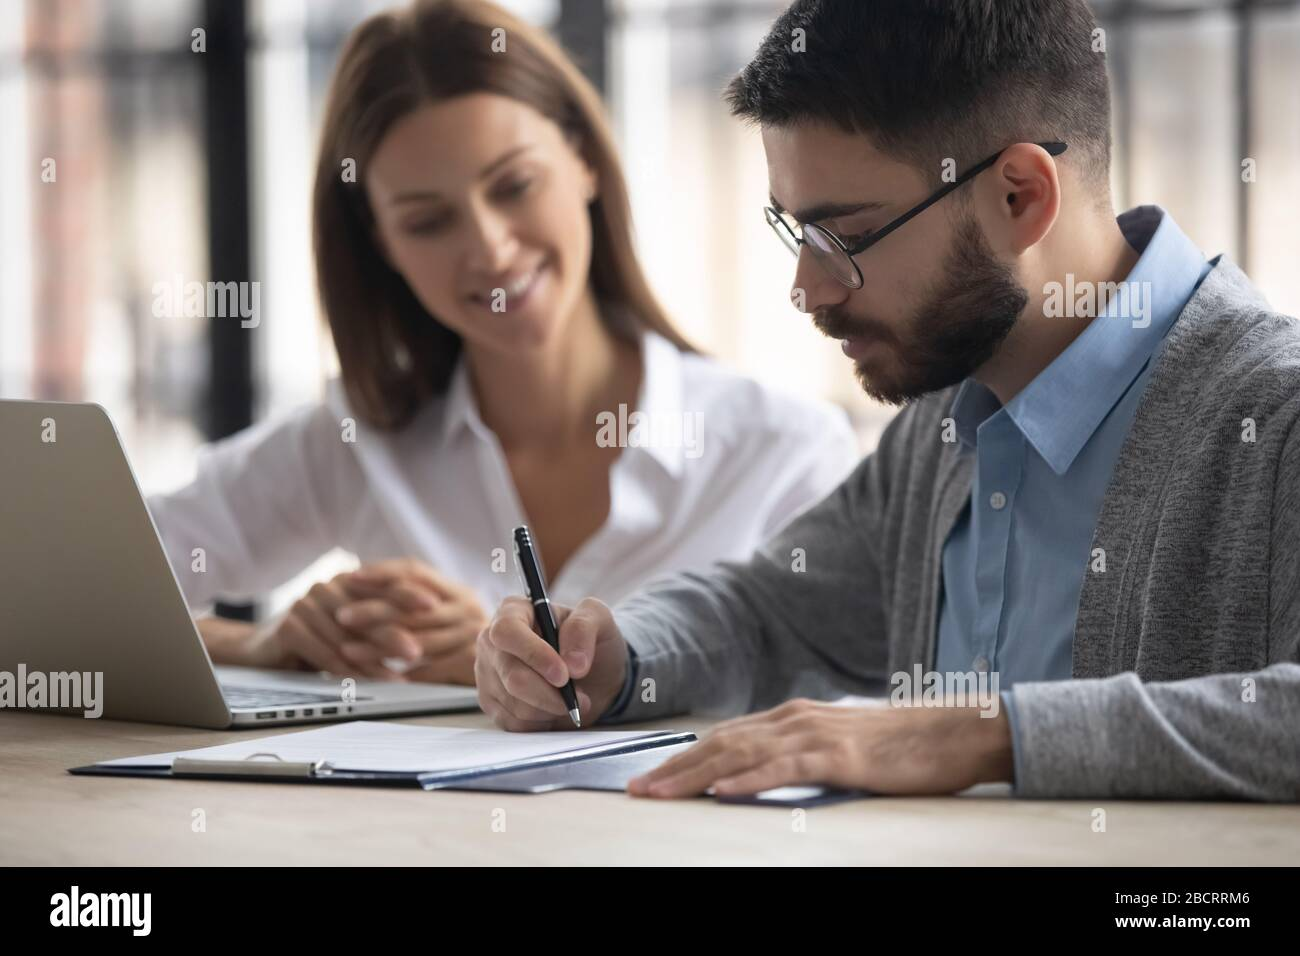 Close up handsome businessman signing partnership agreement concept. Stock Photo